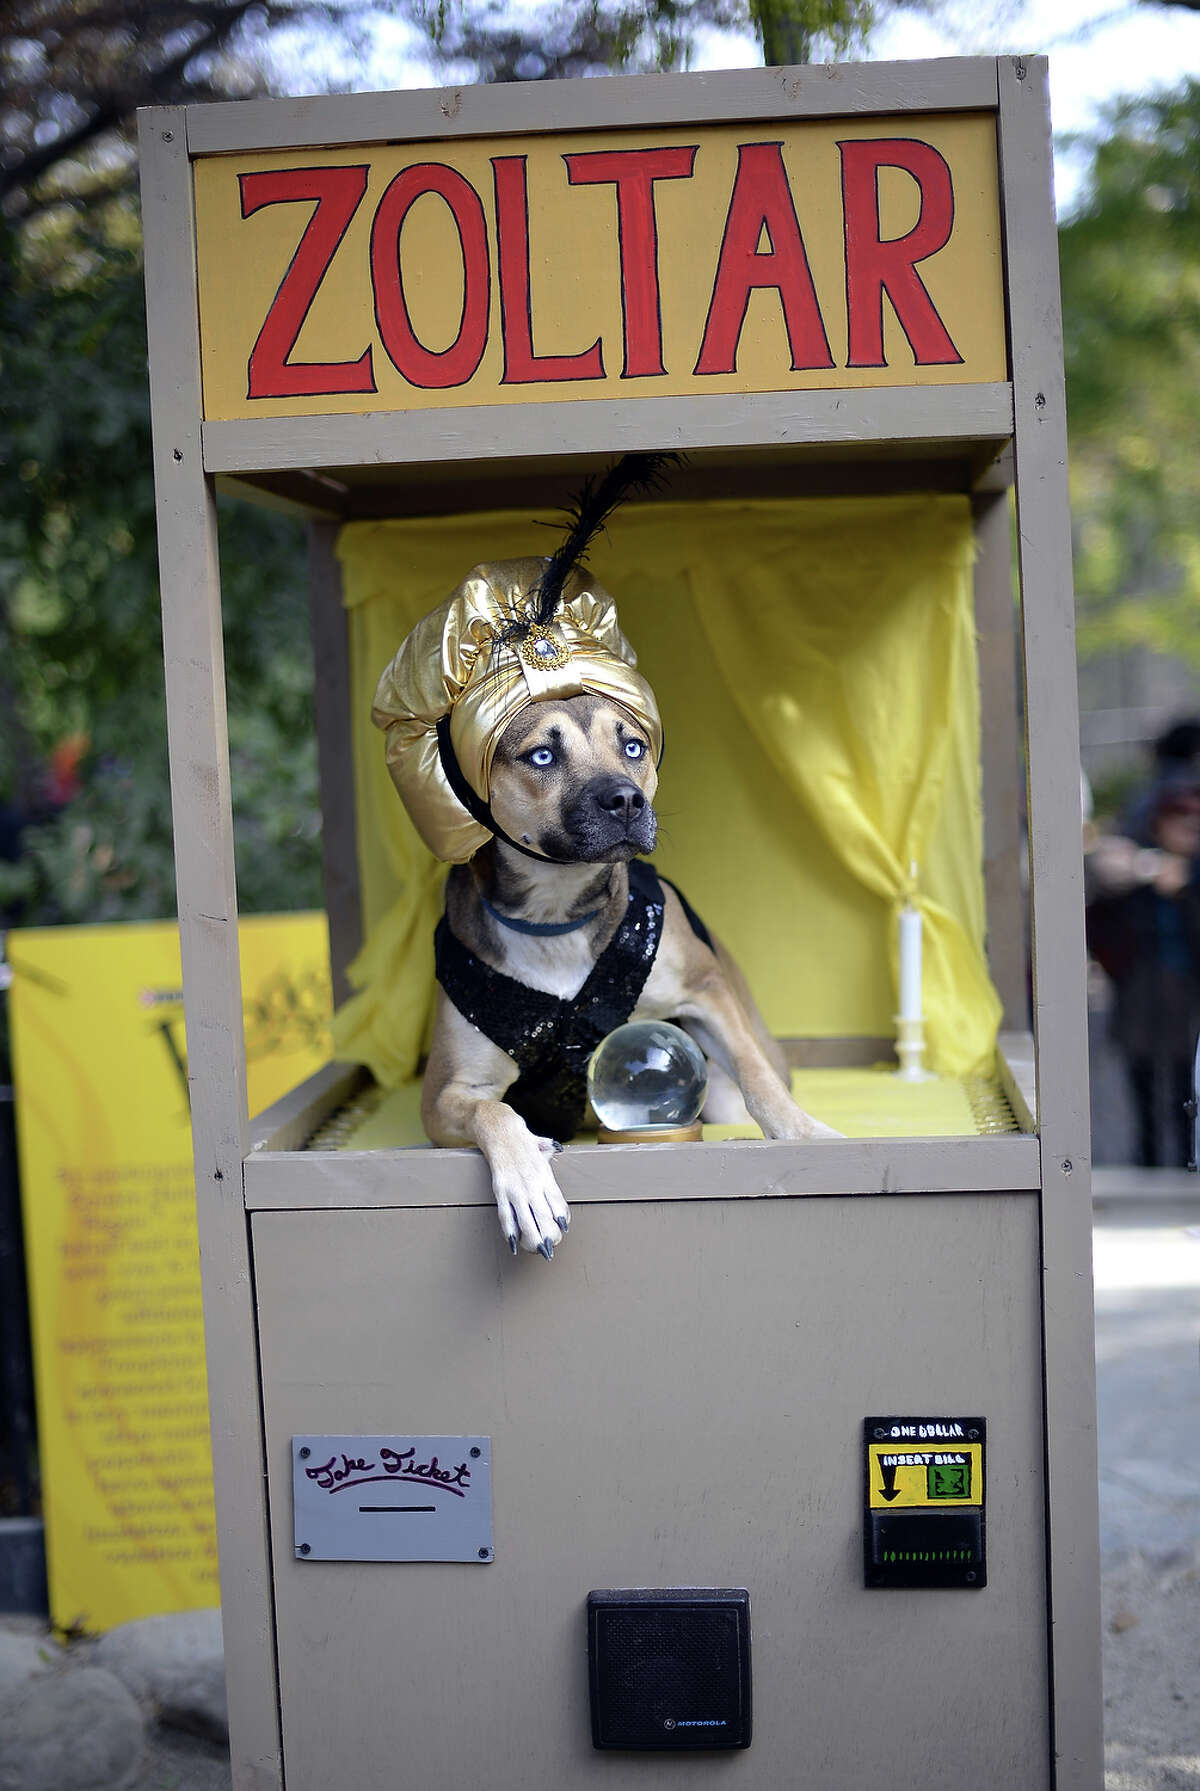 A dog dressed as a Zoltar fortune telling machine participates in the 23rd Annual Tompkins Square Halloween Dog Parade on October 26, 2013 in New York City. Thousands of spectators gather in Tompkins Square Park to watch hundreds of masquerading dogs in the country's largest Halloween Dog Parade.